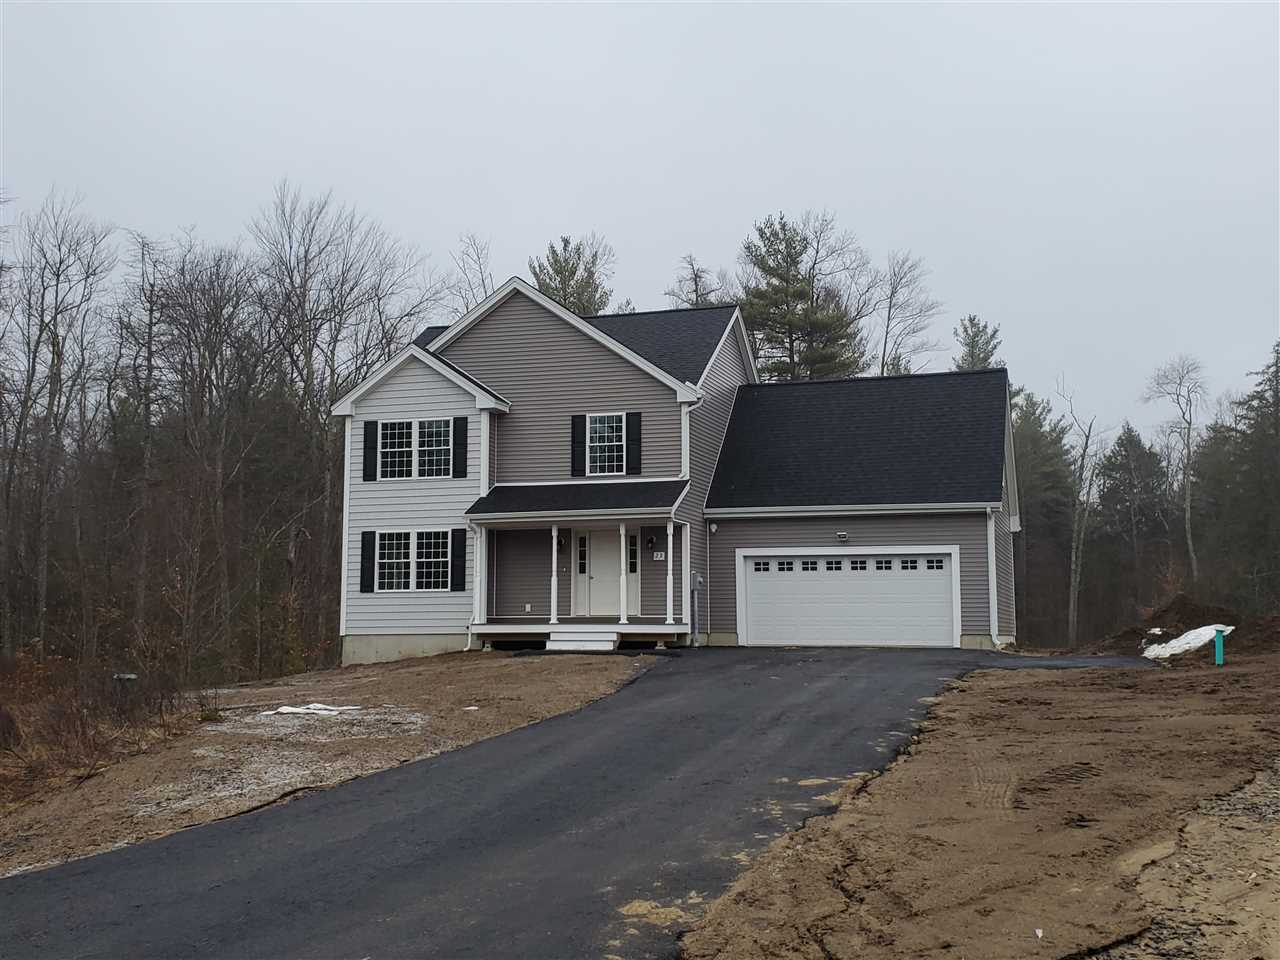 MLS 4728181: Lot#17 Peregrine Way-Unit 17, Milford NH